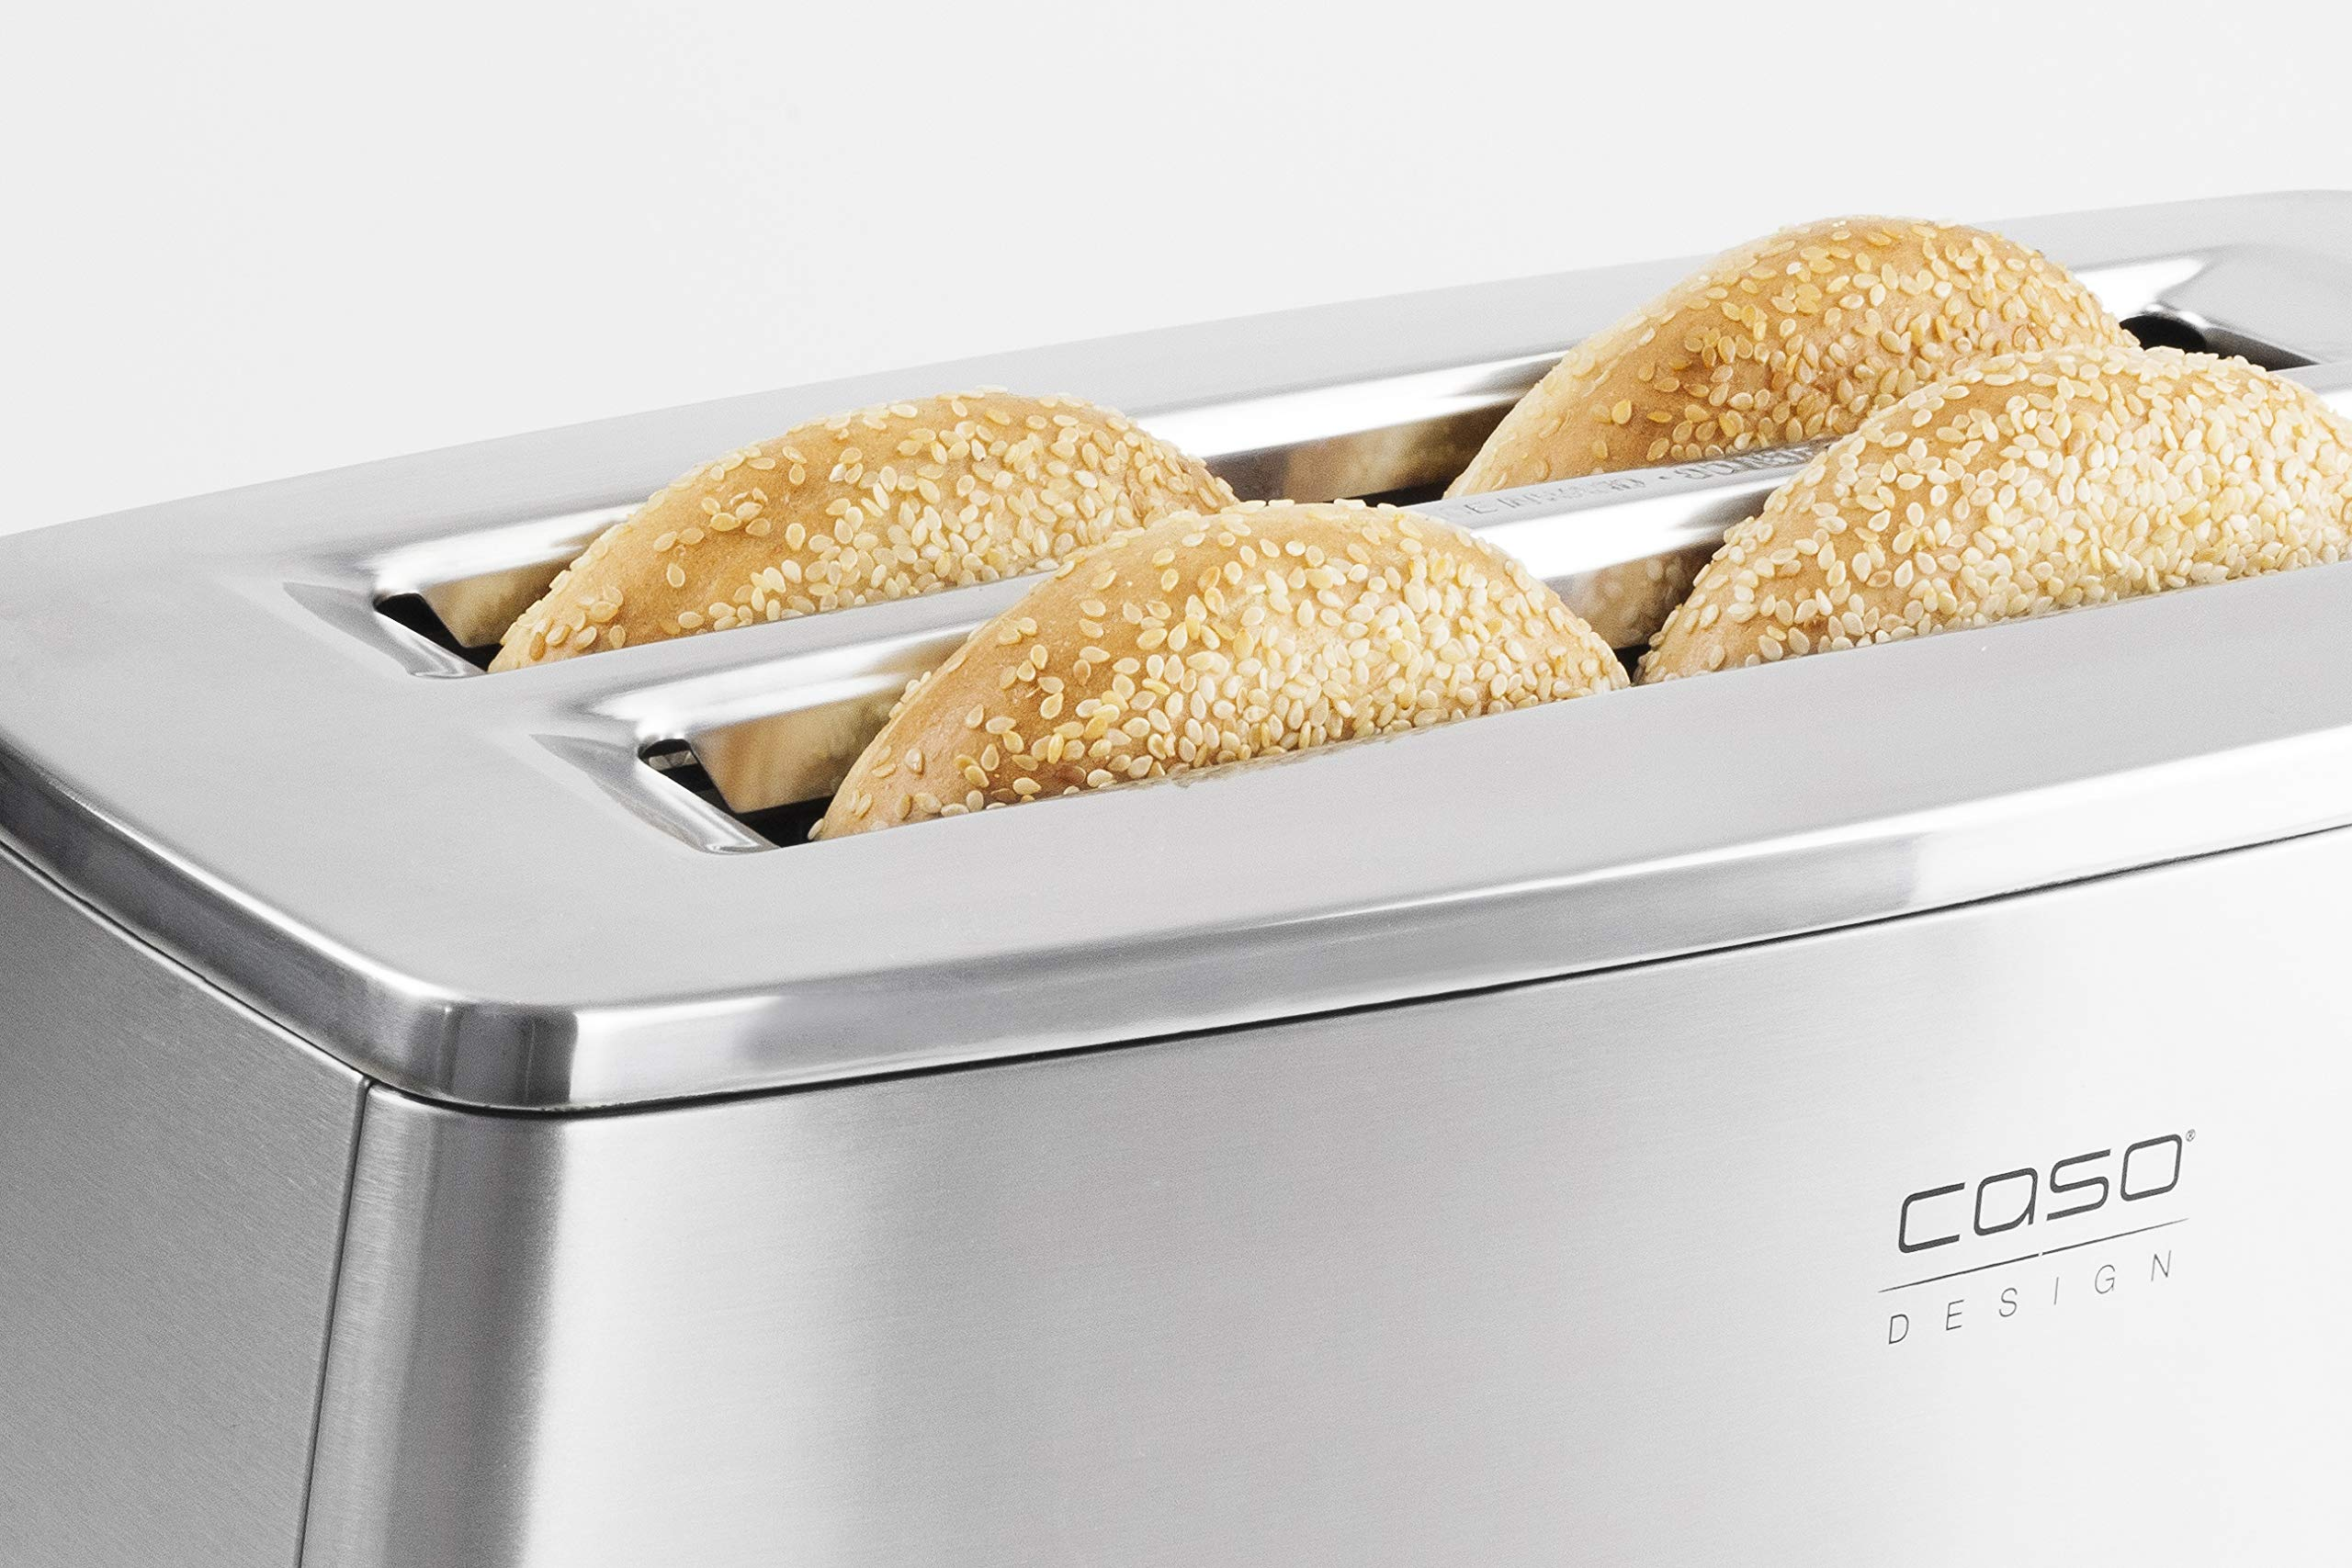 Caso Design INOX.4 Four-Slice Toaster with Wire Warming Basket Attachment, 4, Stainless by Caso Design (Image #4)